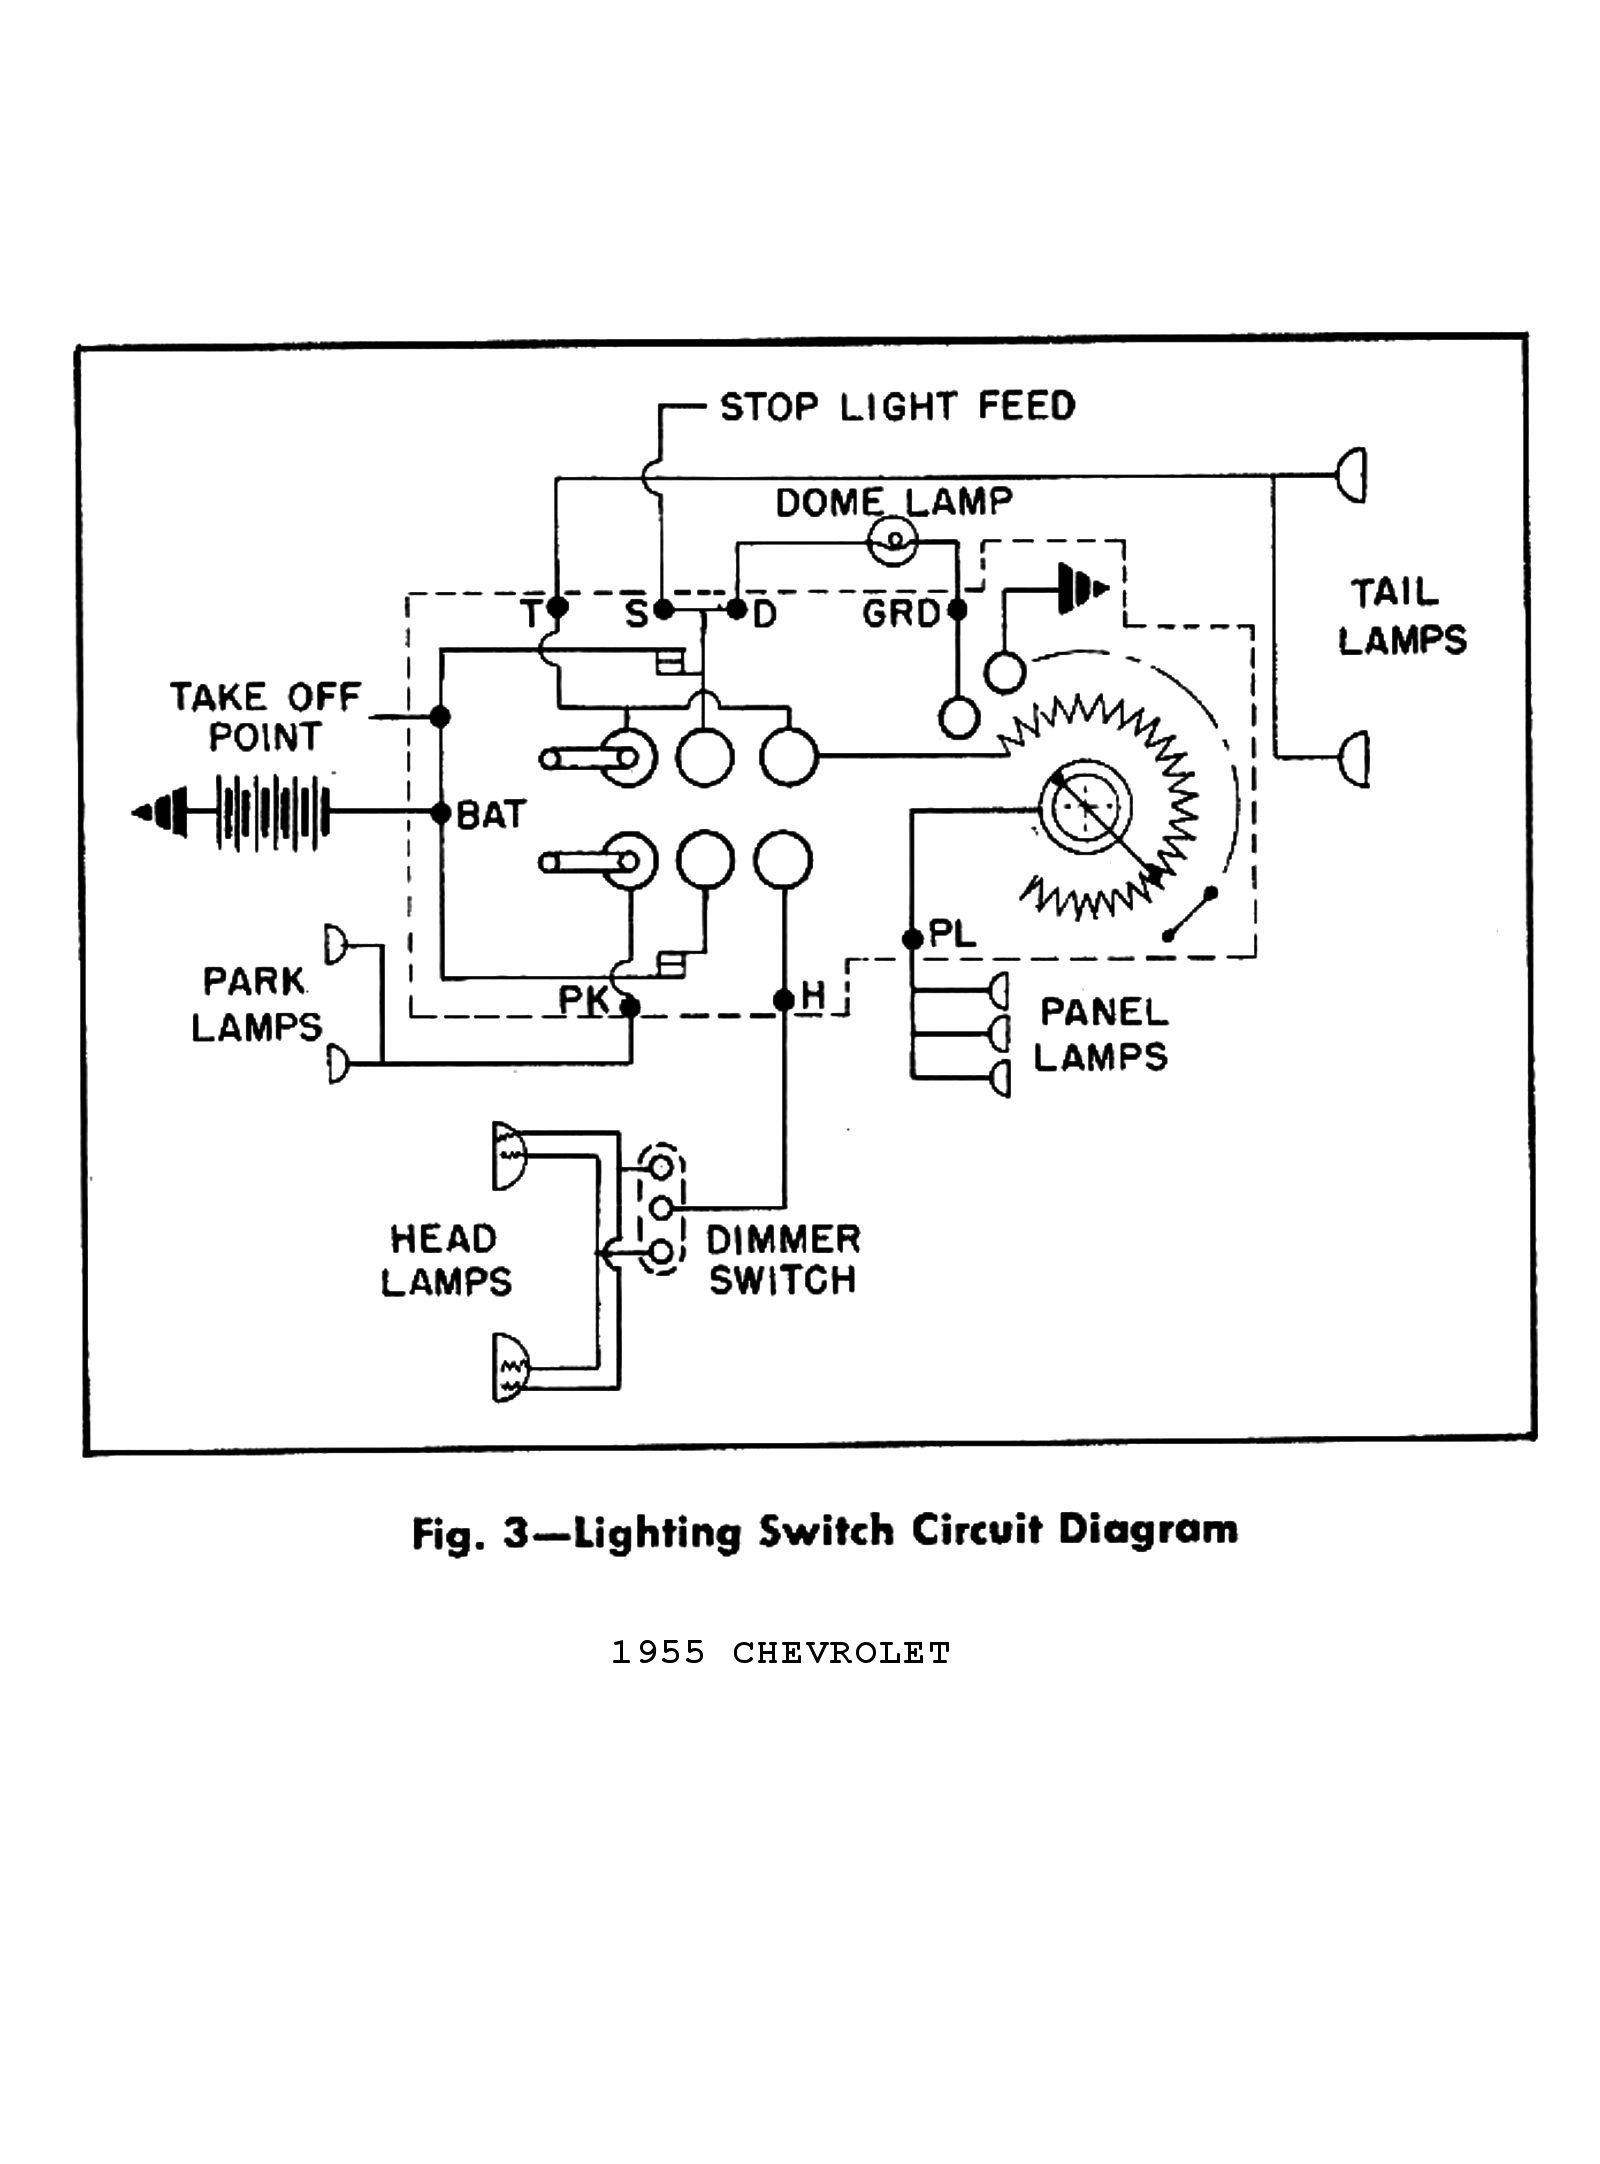 2007 Jeep Liberty Wiring Diagram from chevy.oldcarmanualproject.com